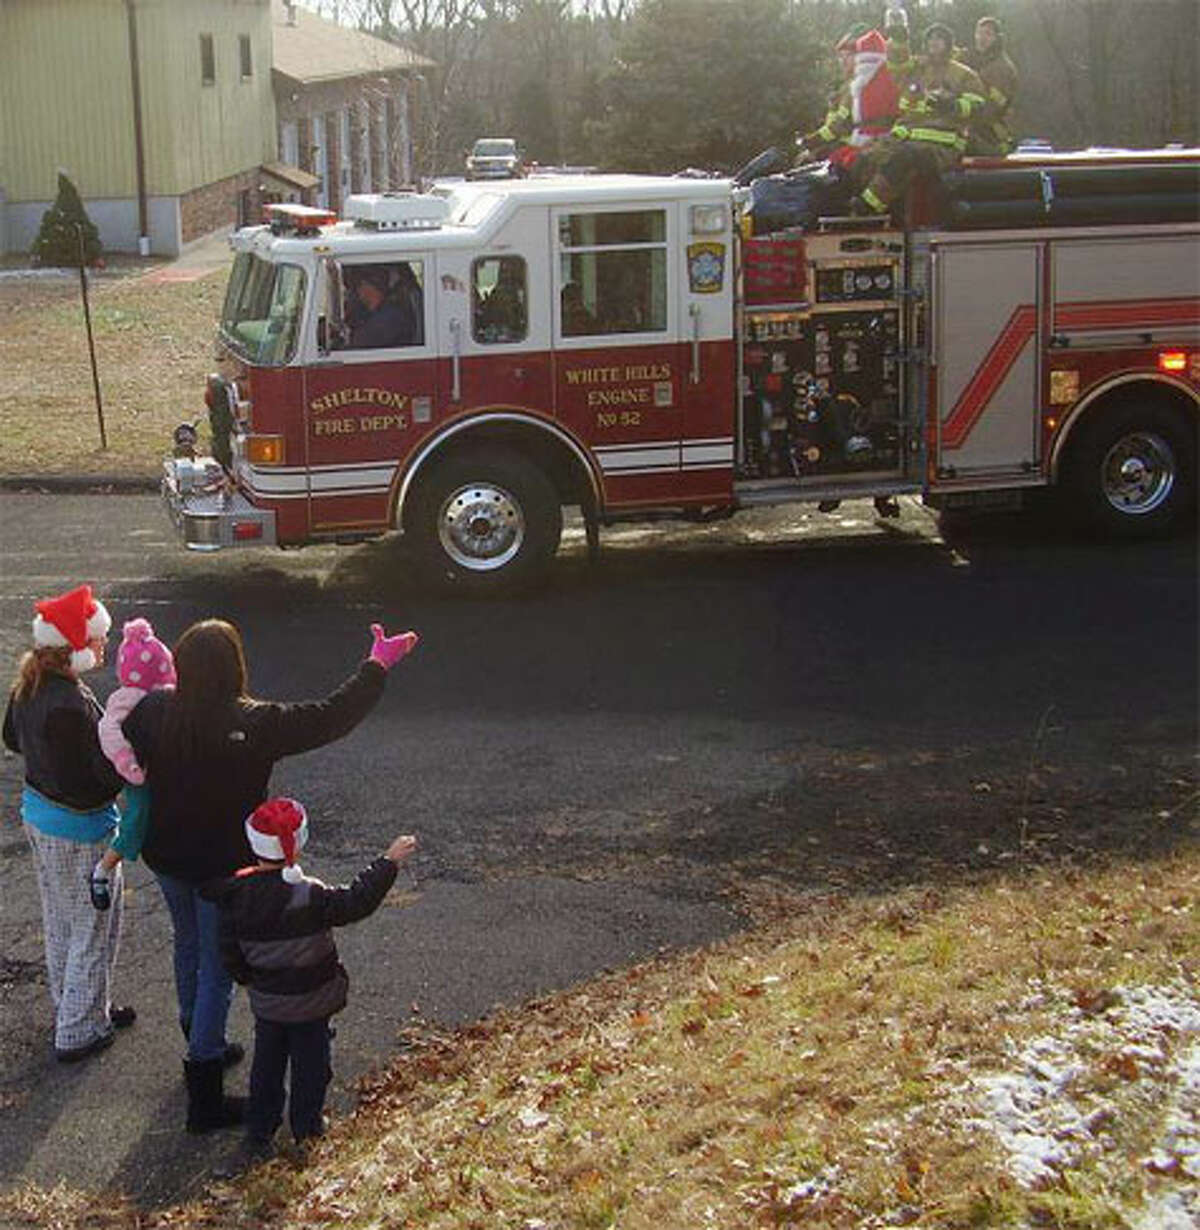 Santa and his elves on a firetruck as they begin their journey through the White Hills of Shelton.